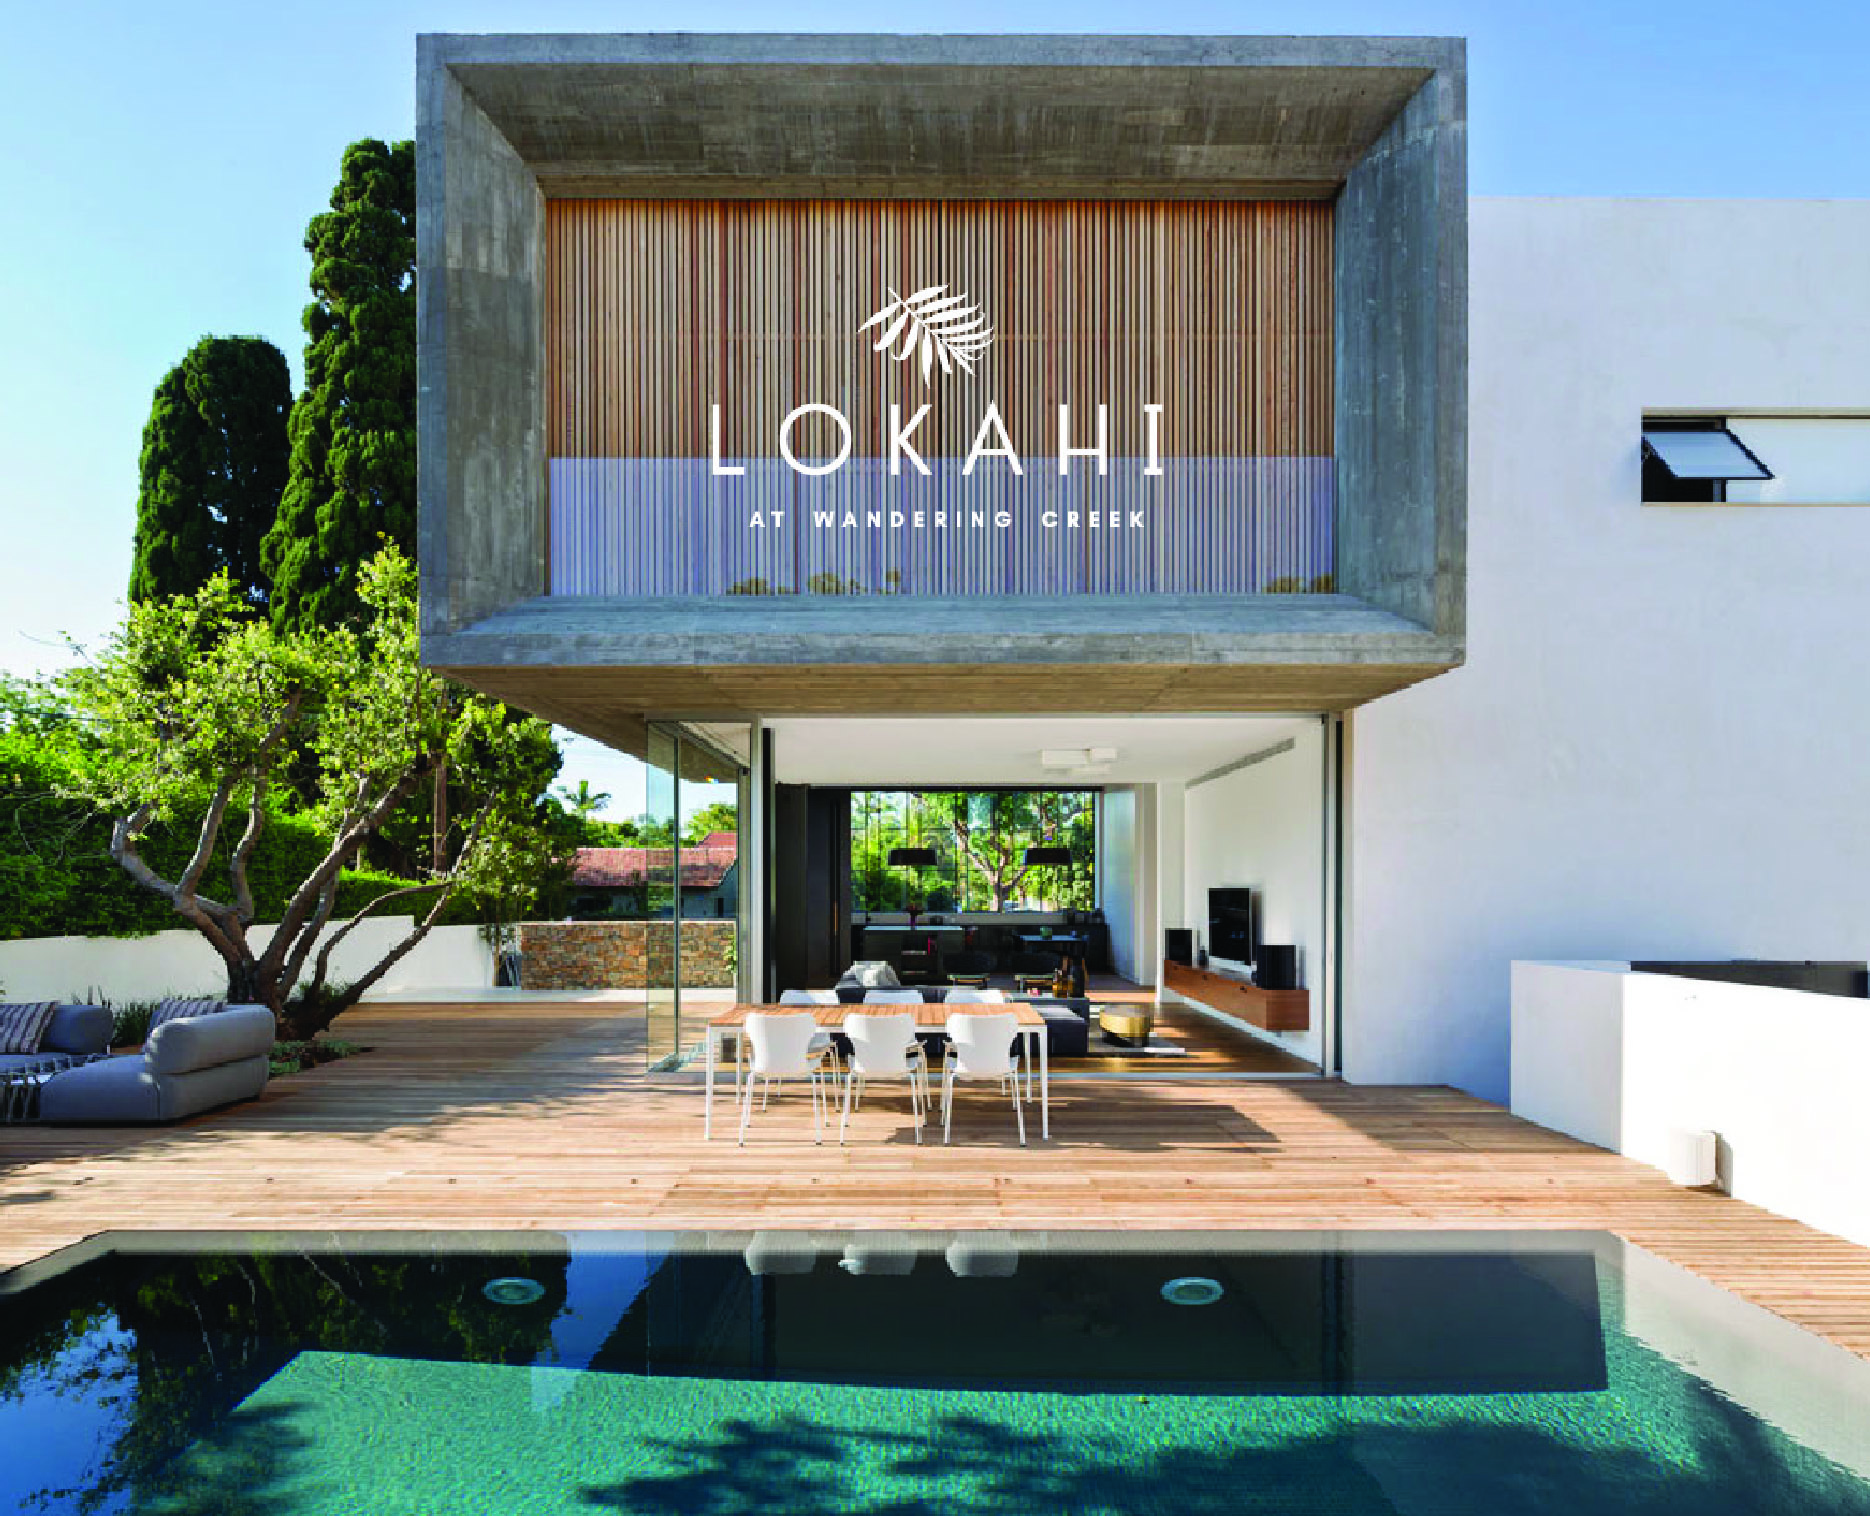 Lokahi_HomeComps_1.jpg